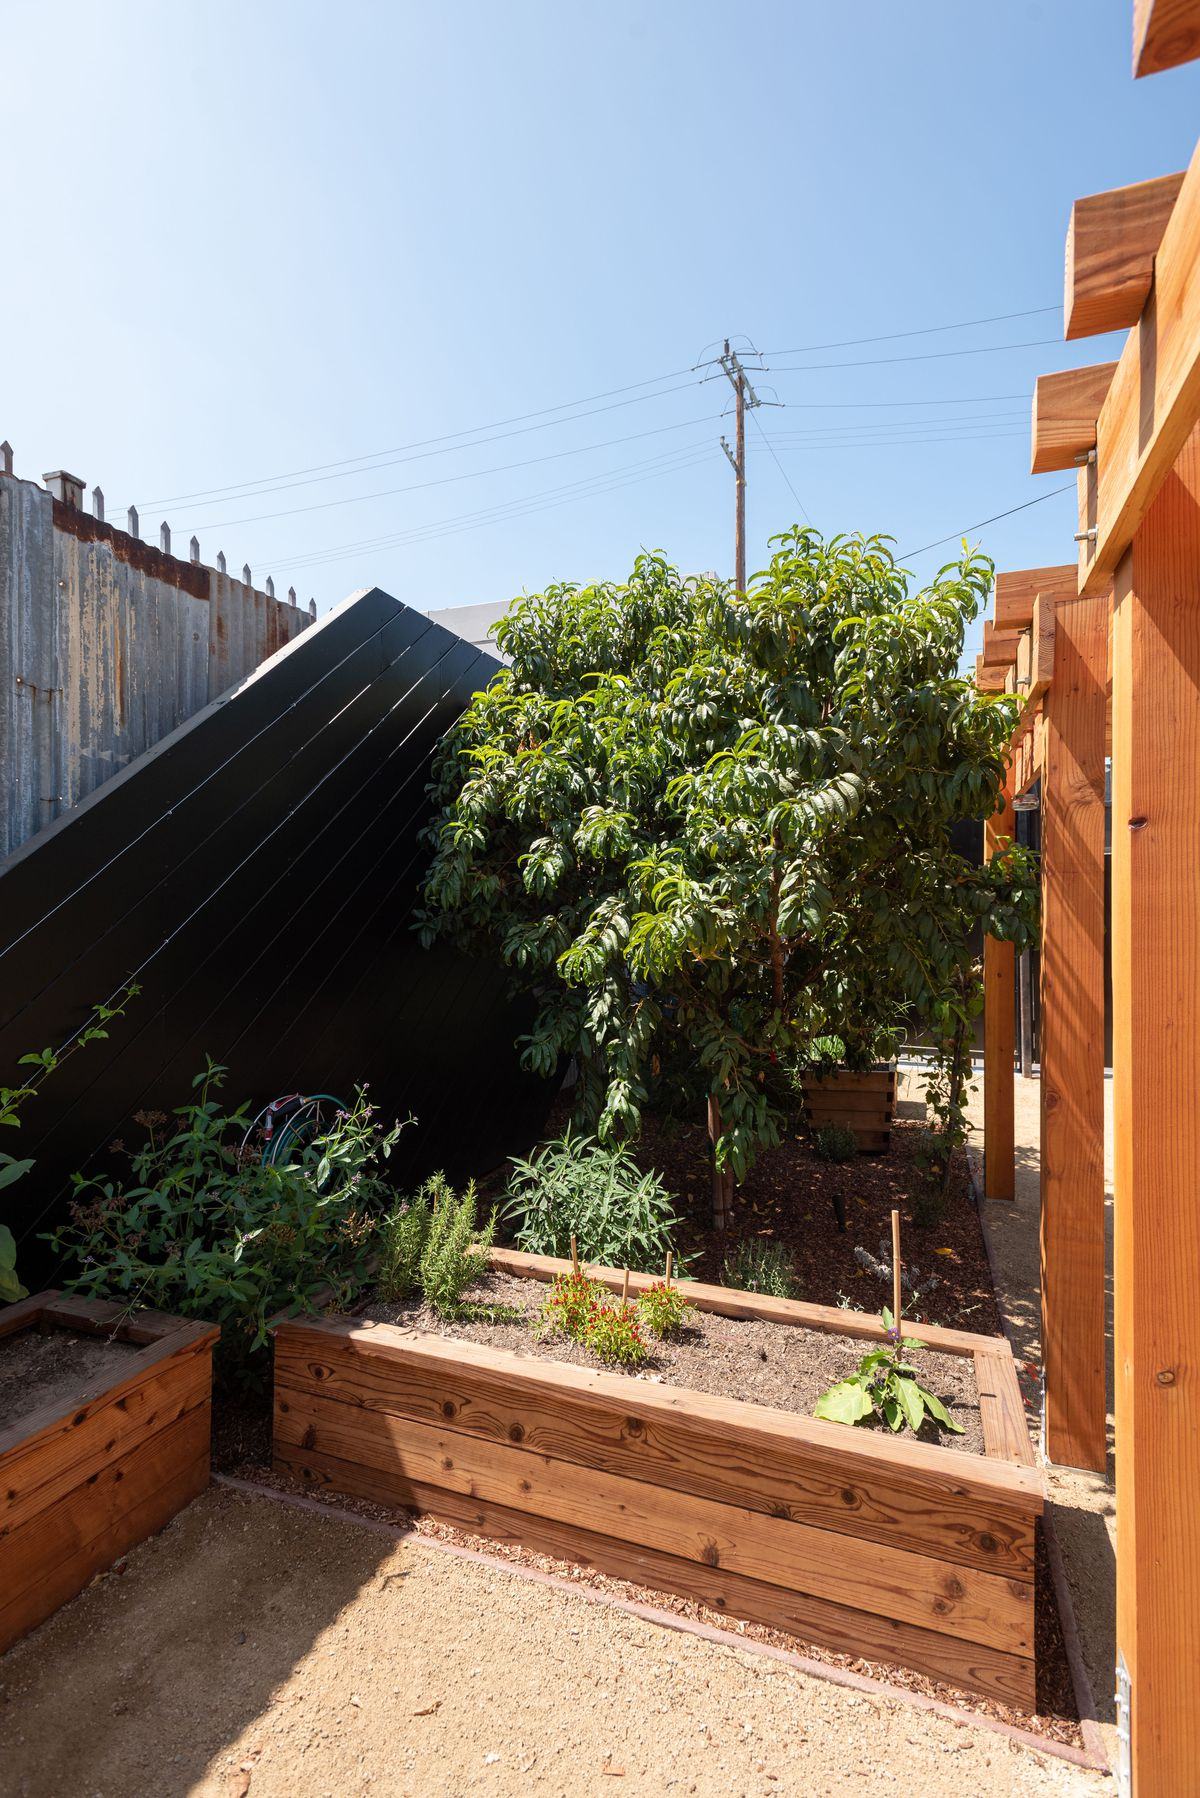 A tilted view of a garden with boxes and lots of greenery.